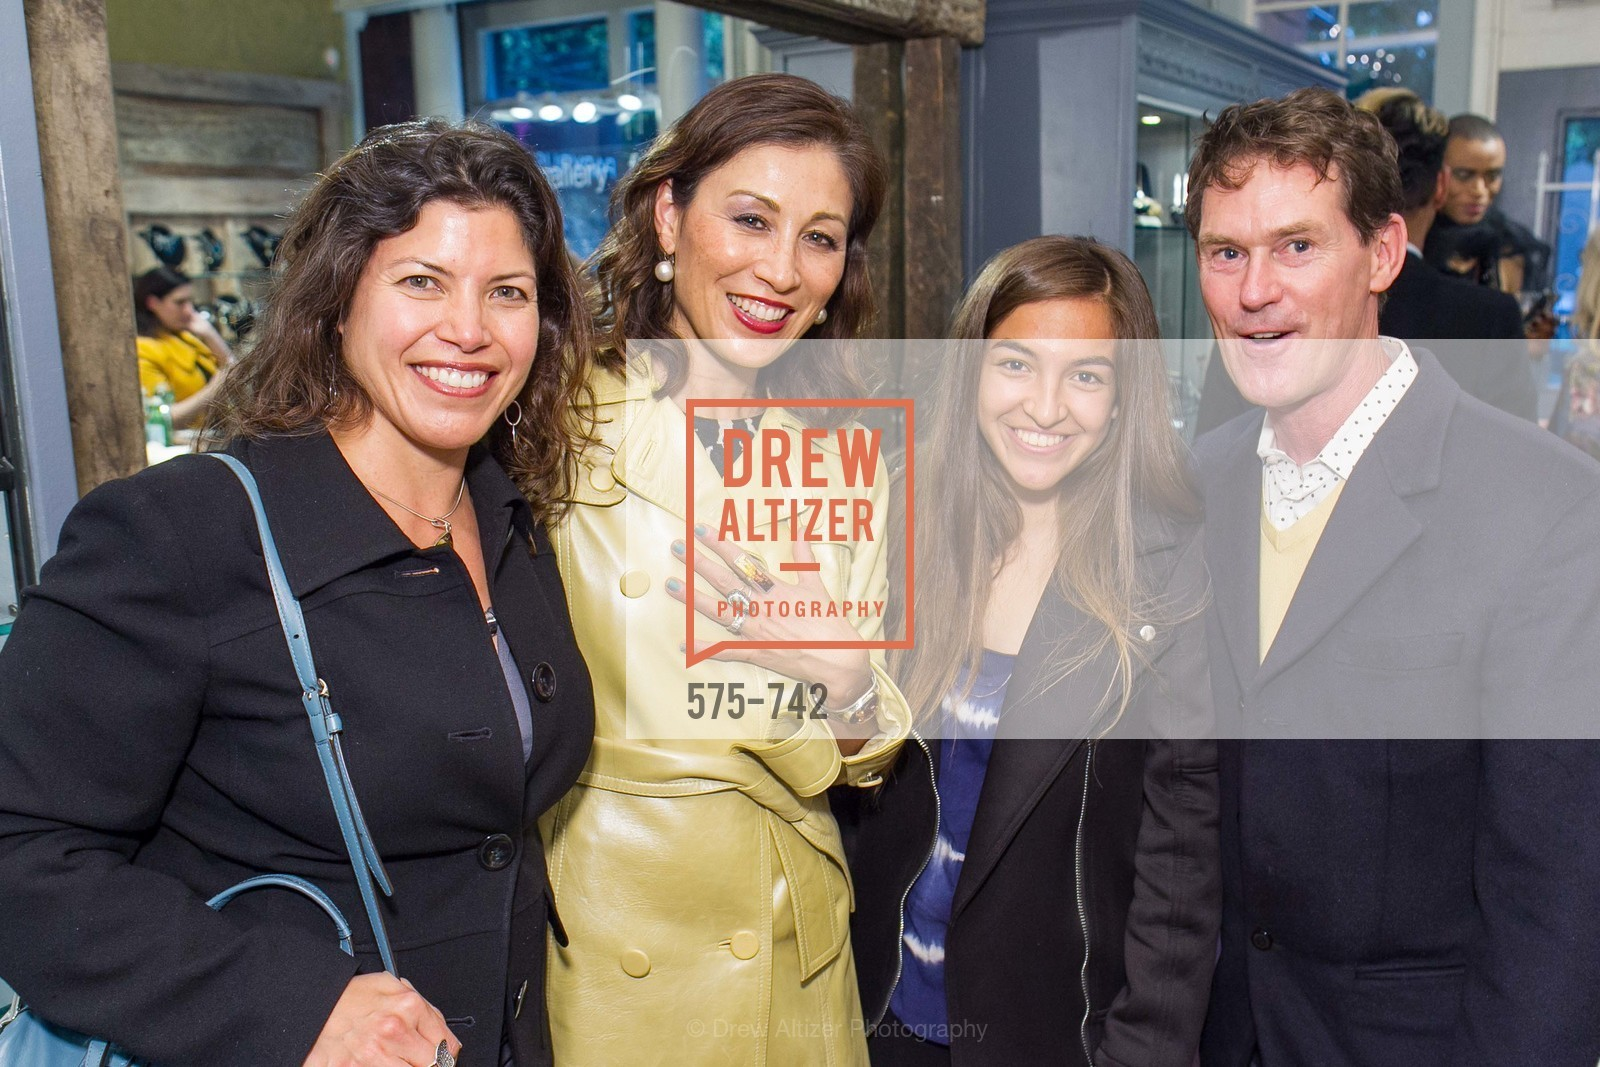 Alyssa Etzel, Michelle Pender, Emilie Rader, Ian Murray, LUXETIGERS & GALLERY OF JEWELS Benefit for Dress for Success, US, May 20th, 2015,Drew Altizer, Drew Altizer Photography, full-service agency, private events, San Francisco photographer, photographer california